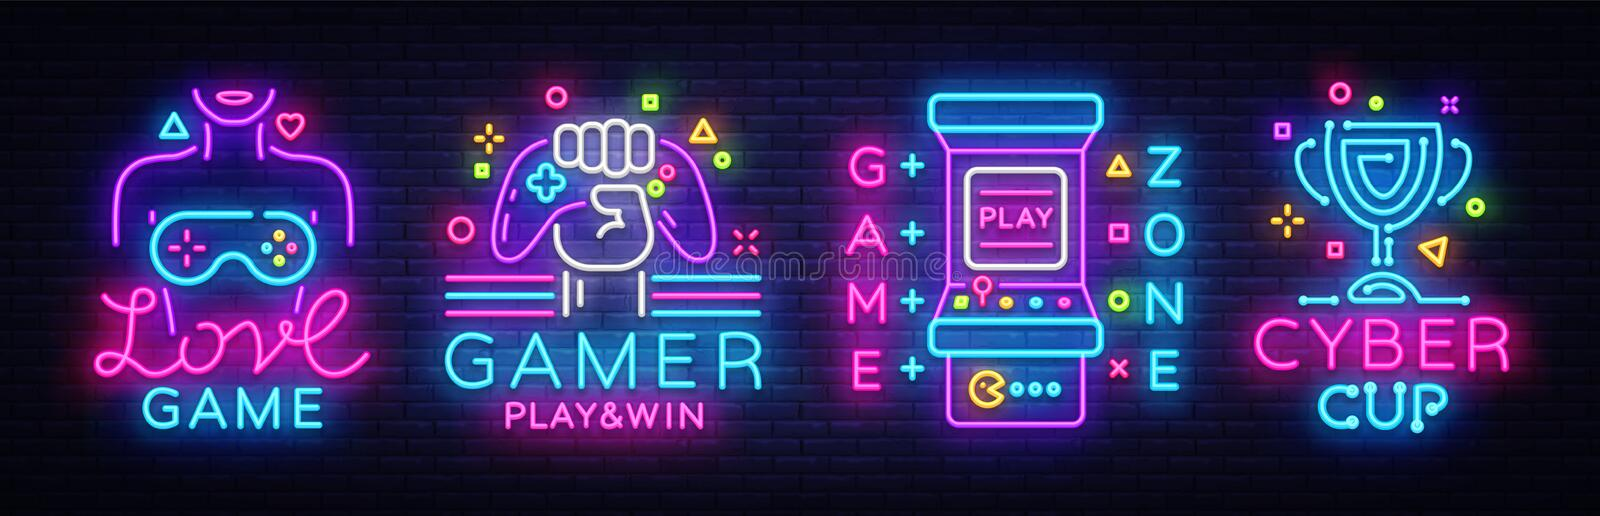 Video Game neon sign collection vector. Conceptual Logos, Love Game, Gamer logo, Game Zone, Cyber sport Emblem in Modern royalty free illustration